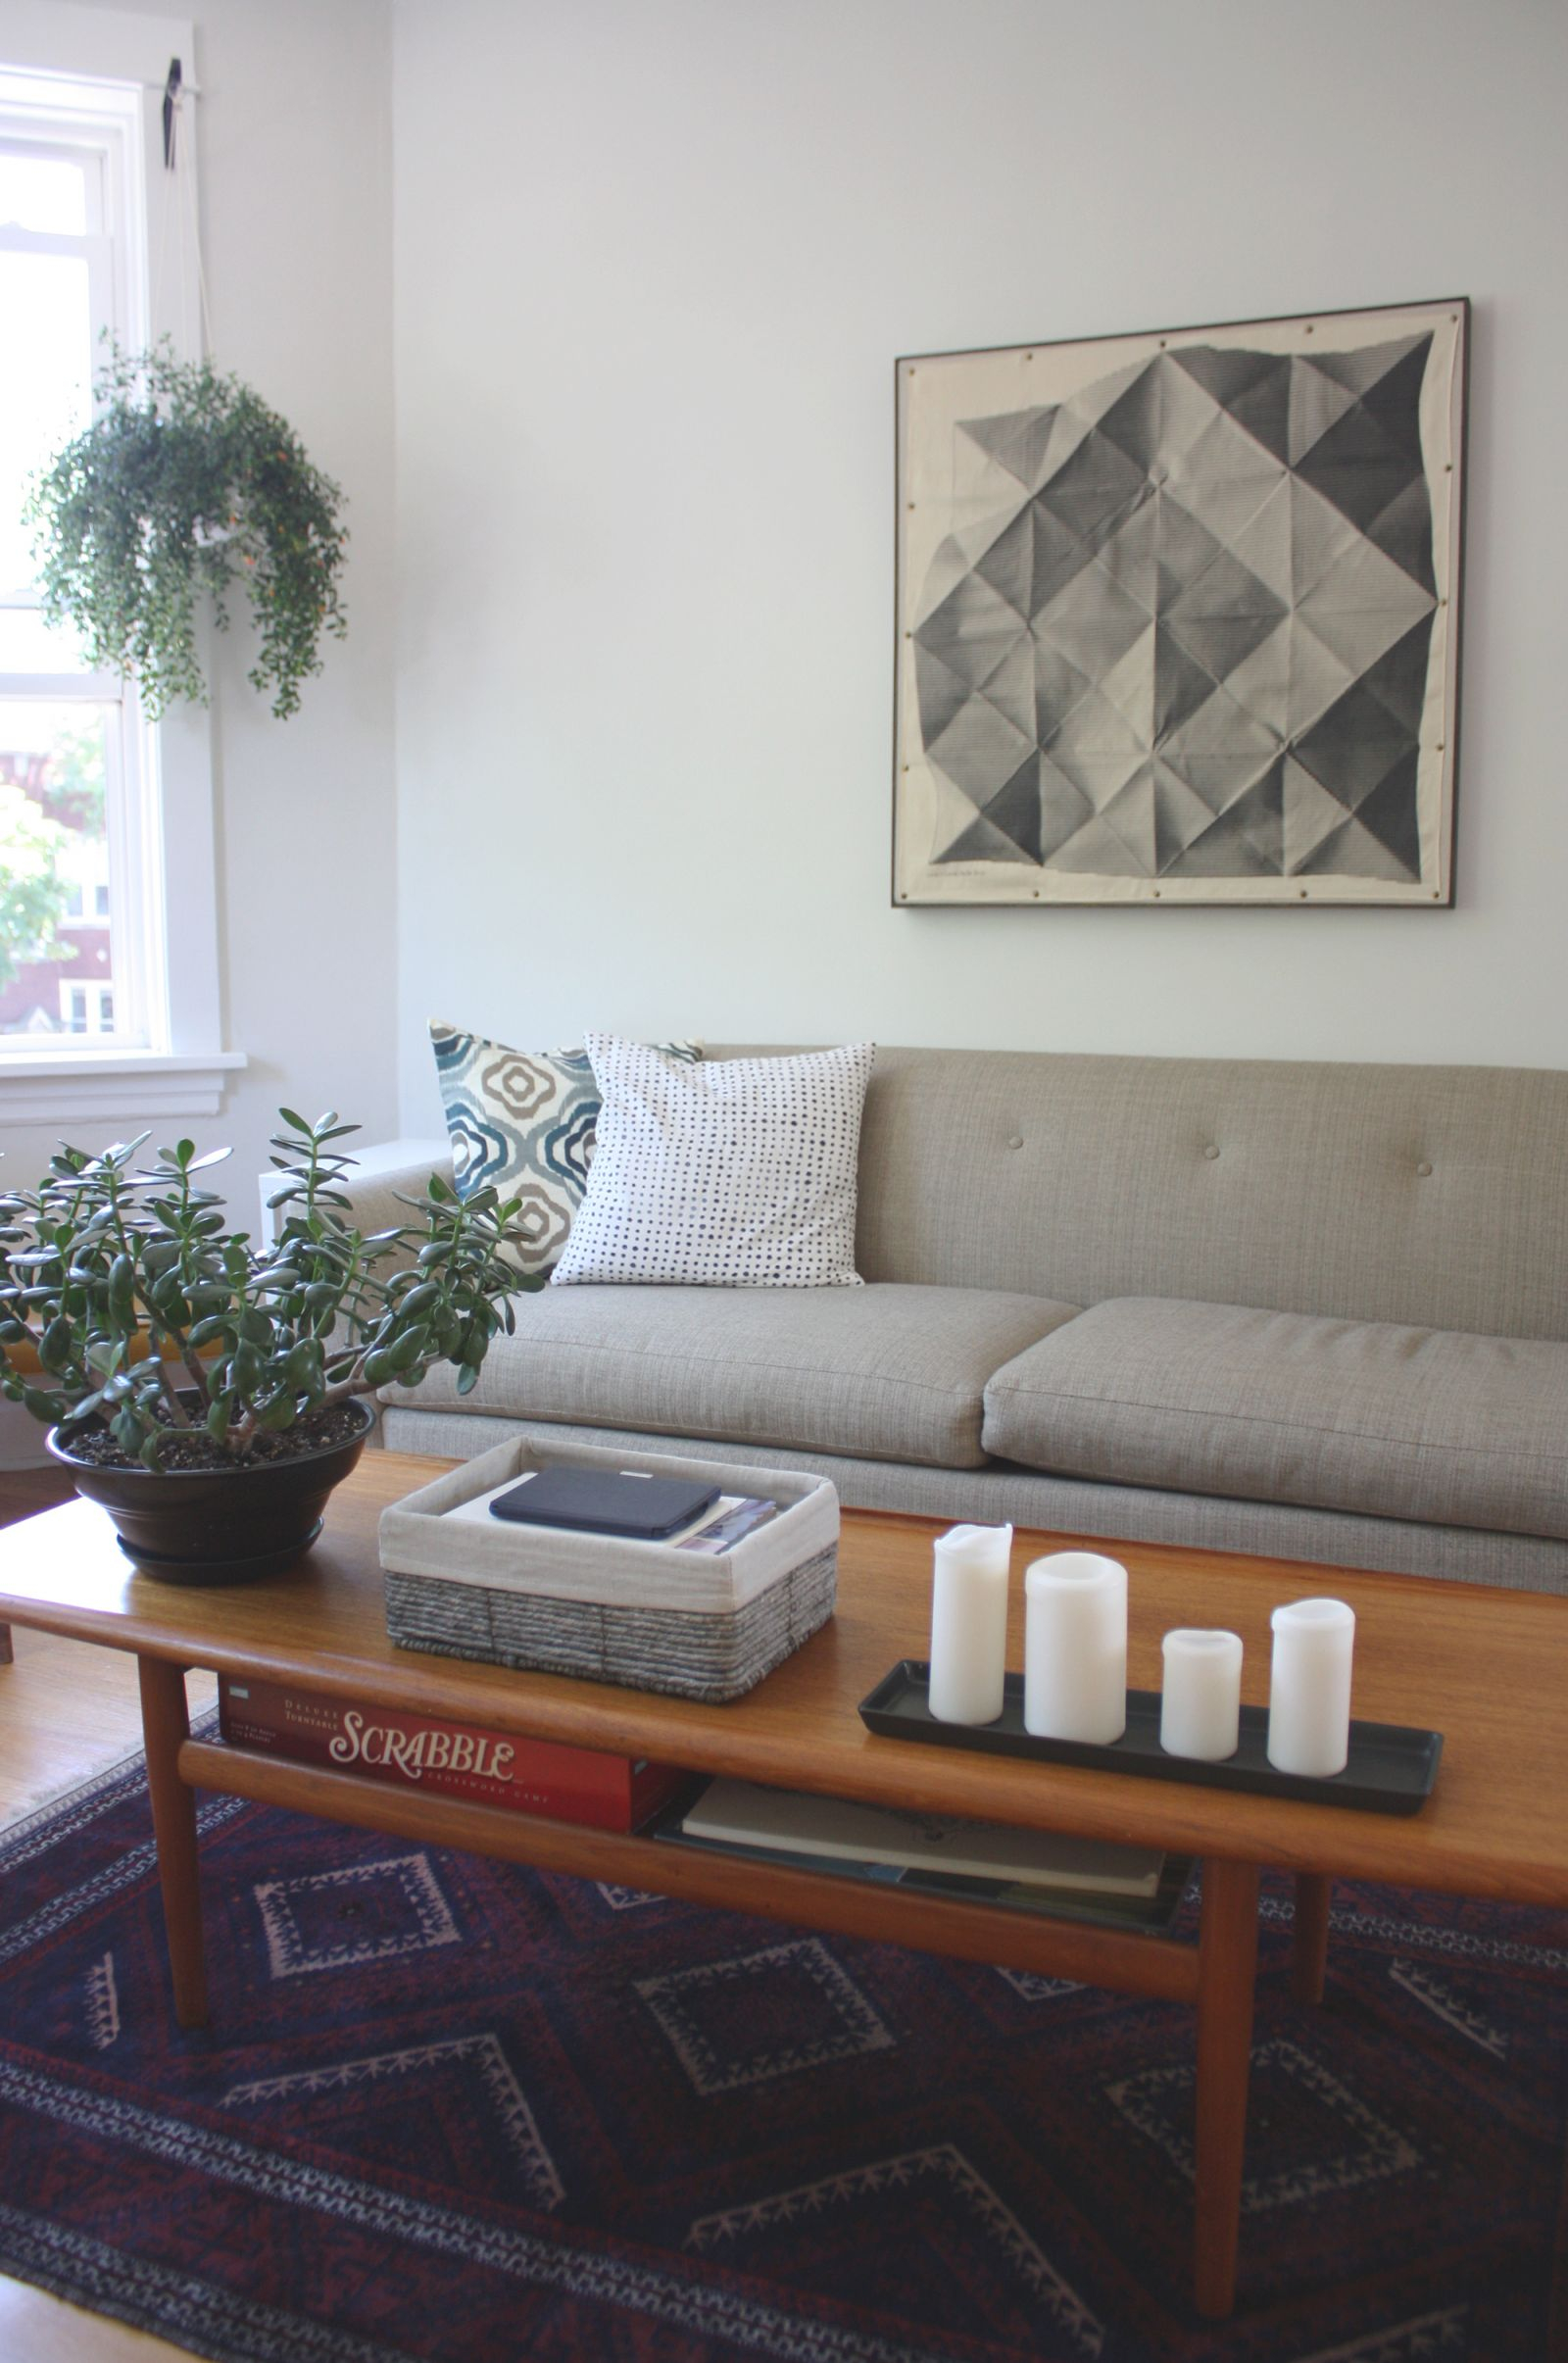 Cheap, Yet Chic: Low Cost Living Room Design Ideas regarding Decorating A Small Living Room On A Budget